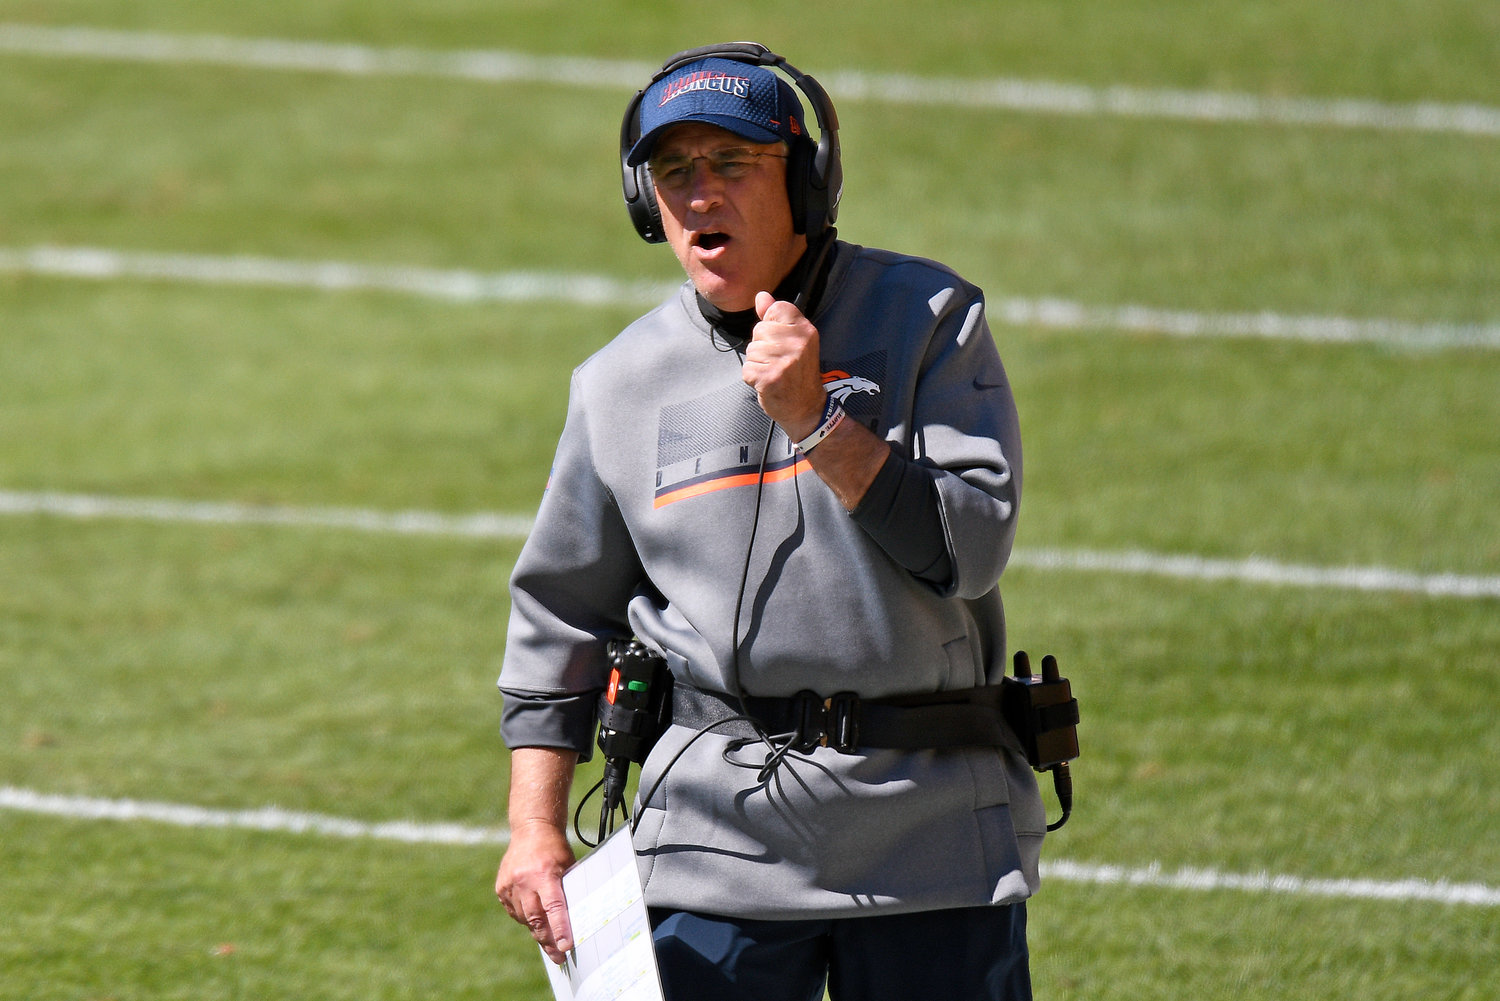 Denver Broncos head coach Vic Fangio walks the sideline during the first half of an NFL football game against the Pittsburgh Steelers in Pittsburgh, Sunday, Sept. 20, 2020. (AP Photo/Don Wright)